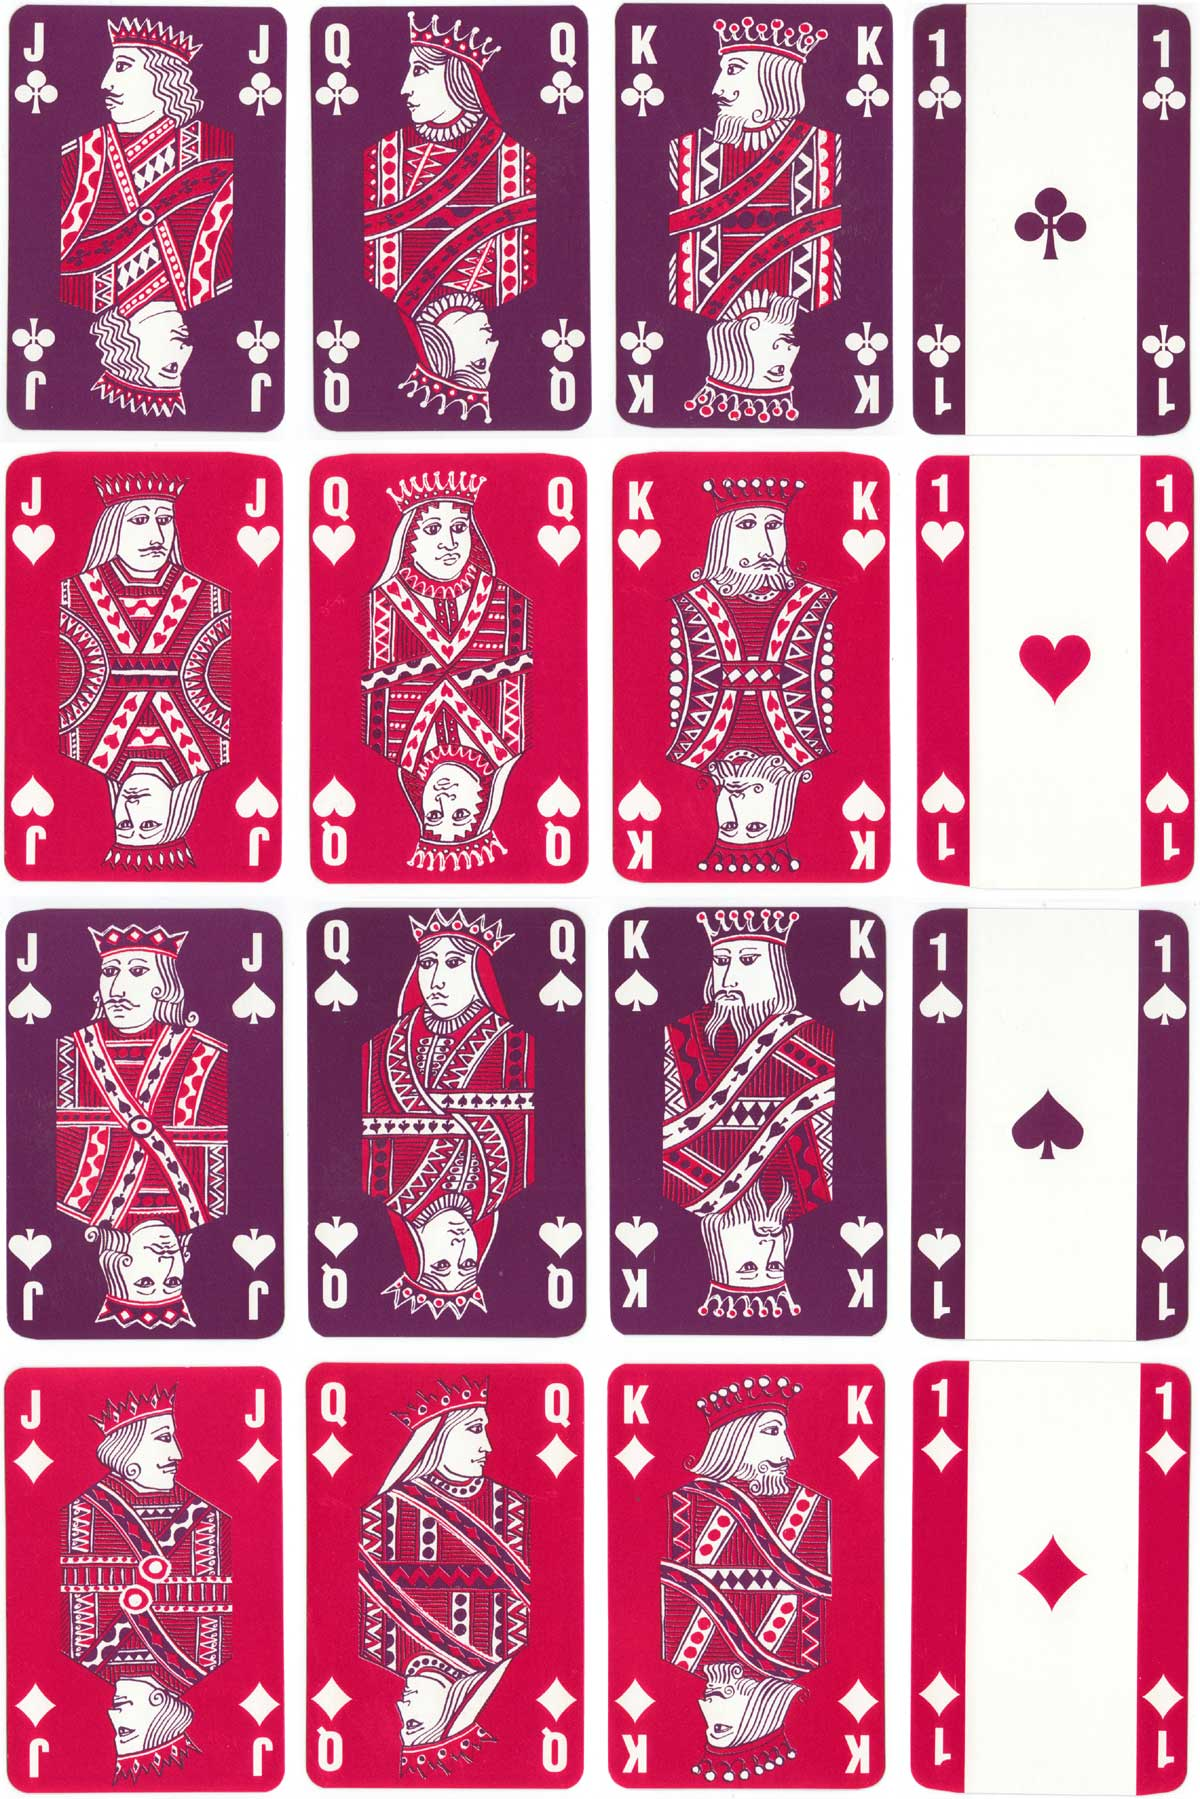 Disability Daily playing cards designed by Tamasin Cole, printed by Padnall Printers